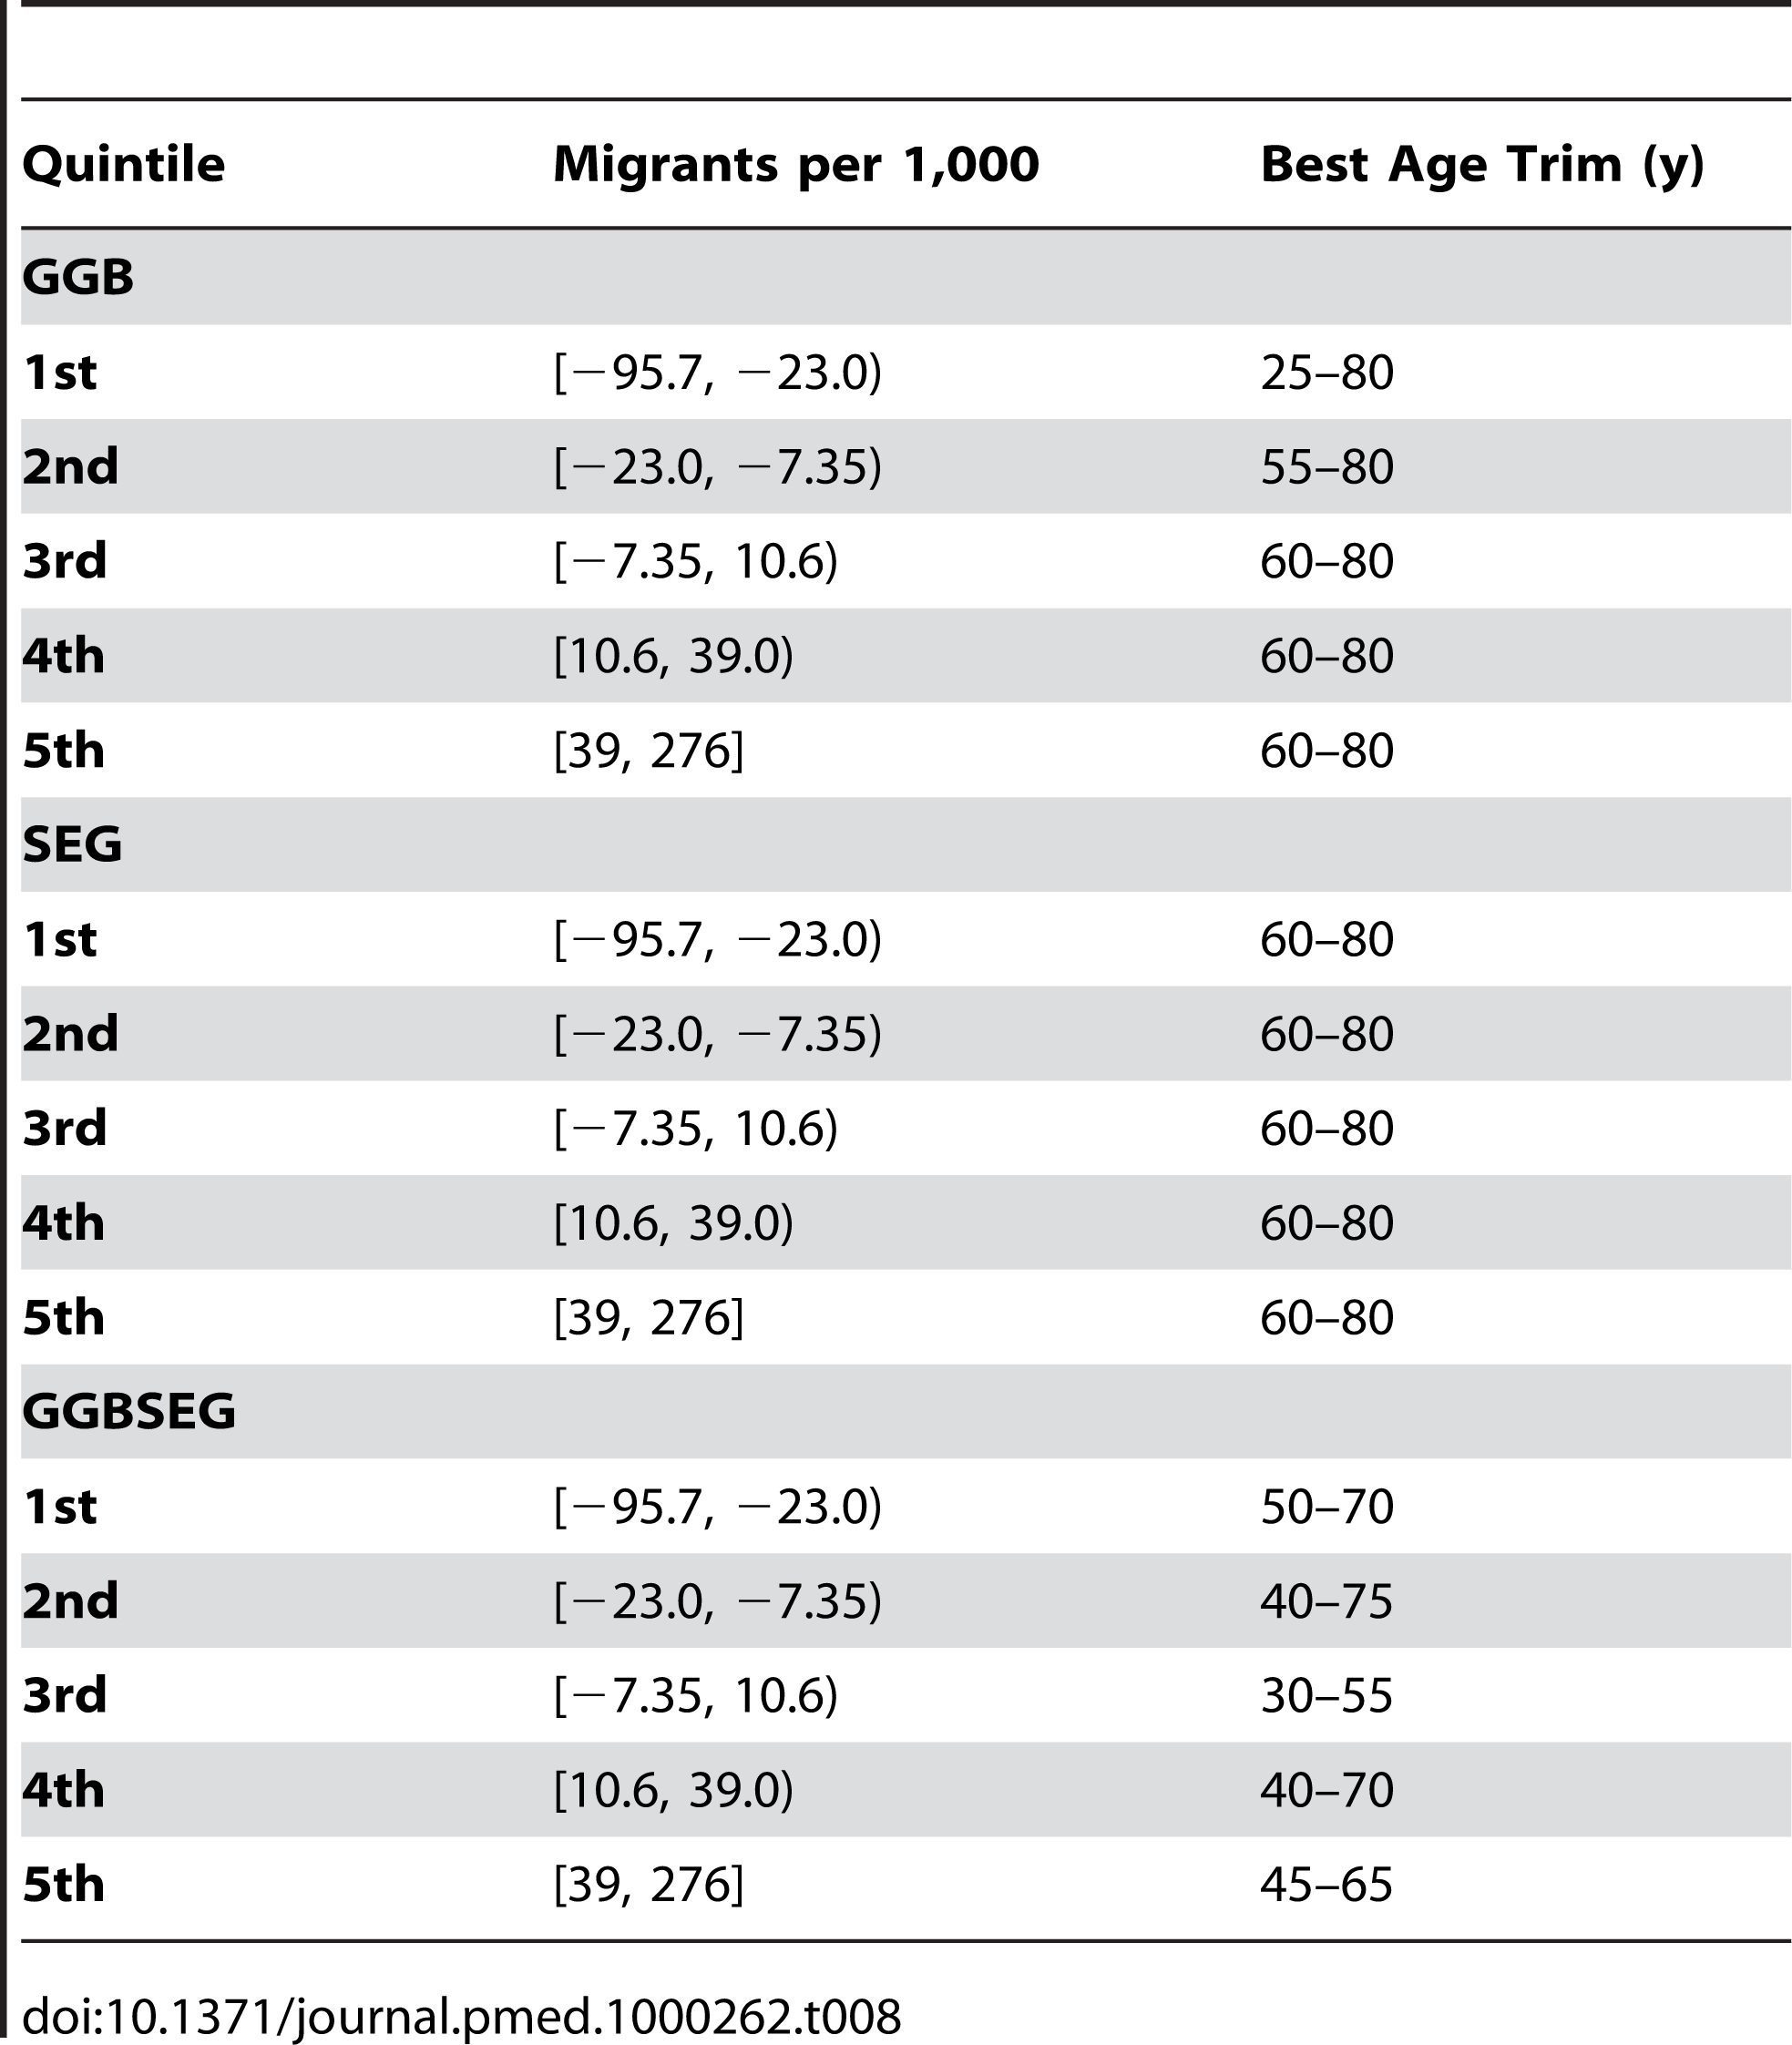 Age trims with the lowest median relative error for different quintiles of migration in US counties.